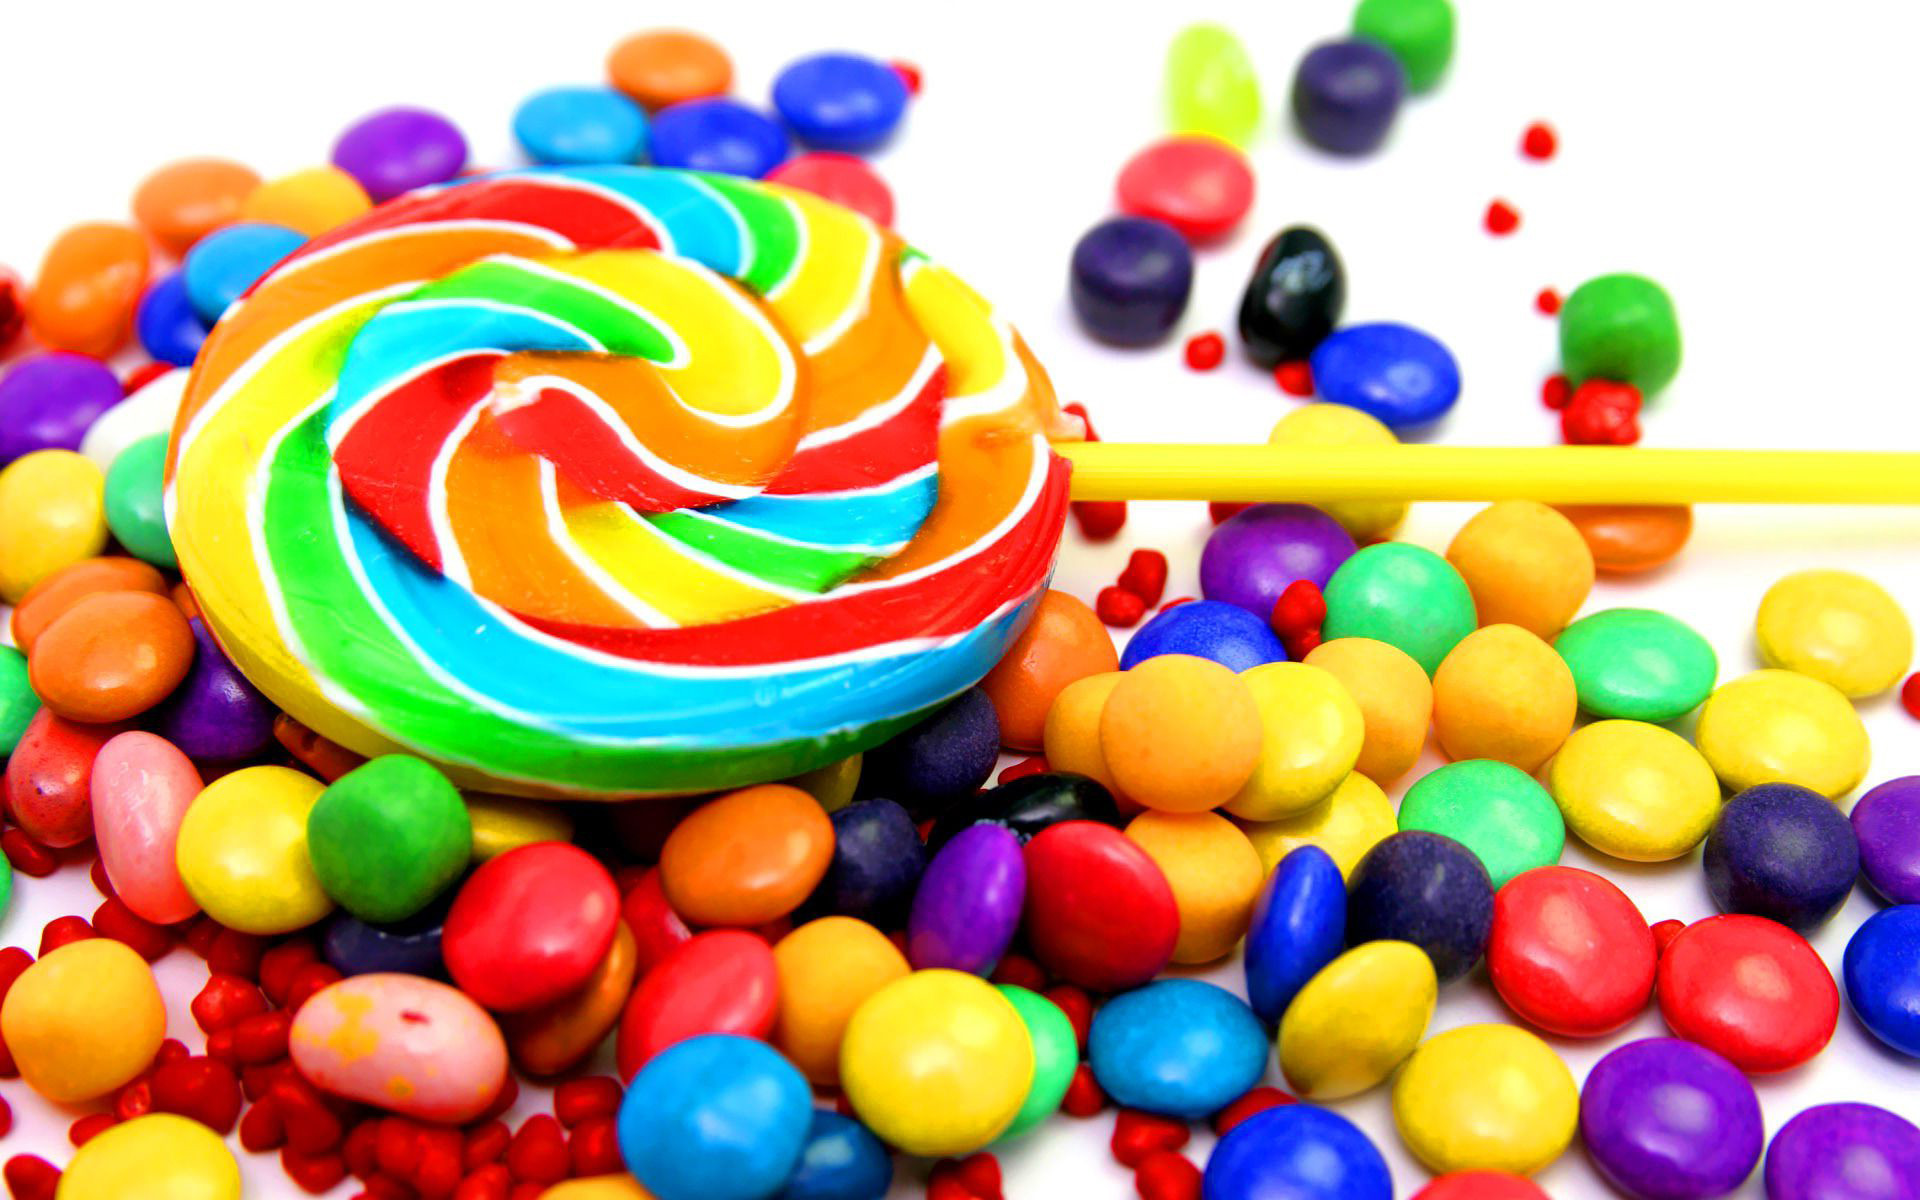 Candy Wallpaper (47 Wallpapers)